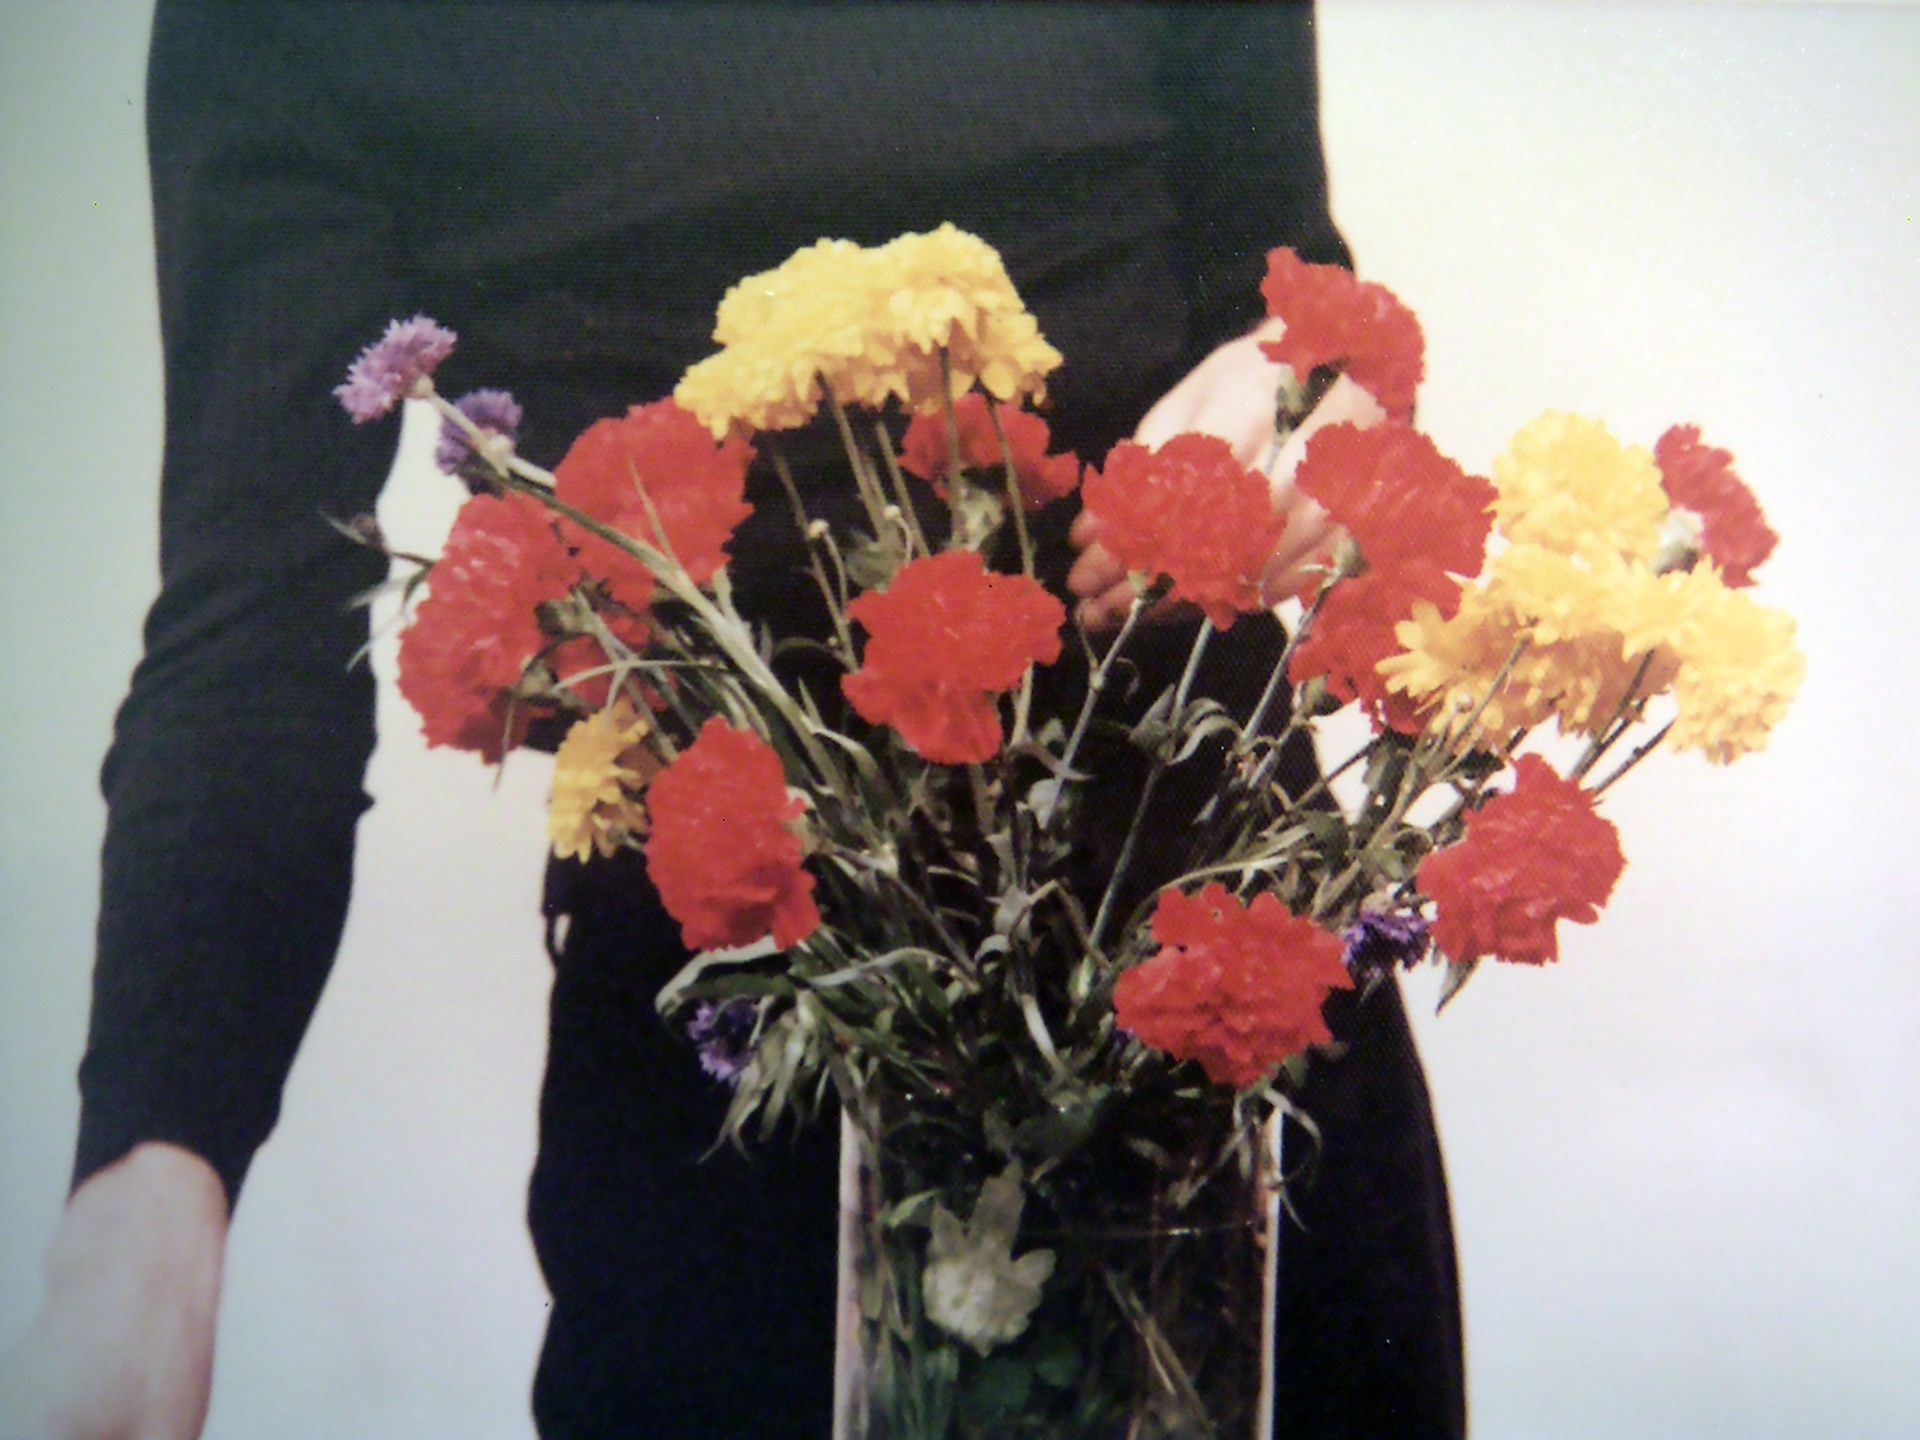 Bas Jan Ader, Primary Time, 1974, Video, Courtesy The Estate of Bas Jan Ader / Mary Sue Ader Andersen & Meliksetian | Briggs, Los Angeles